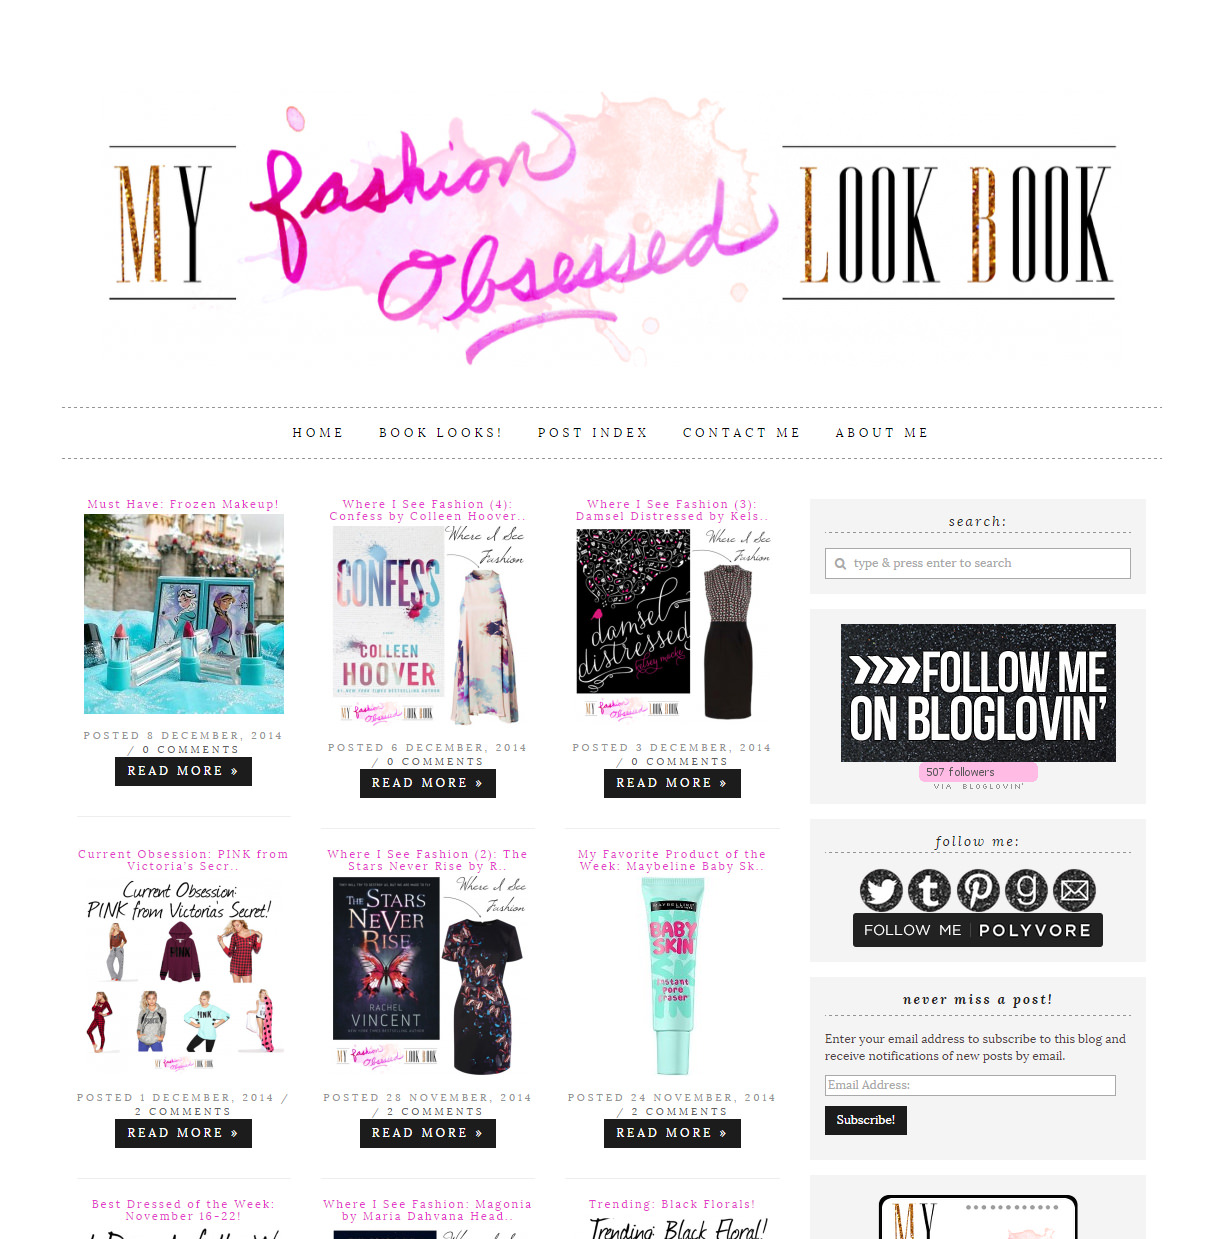 My Fashion Obsessed Look Book blog design